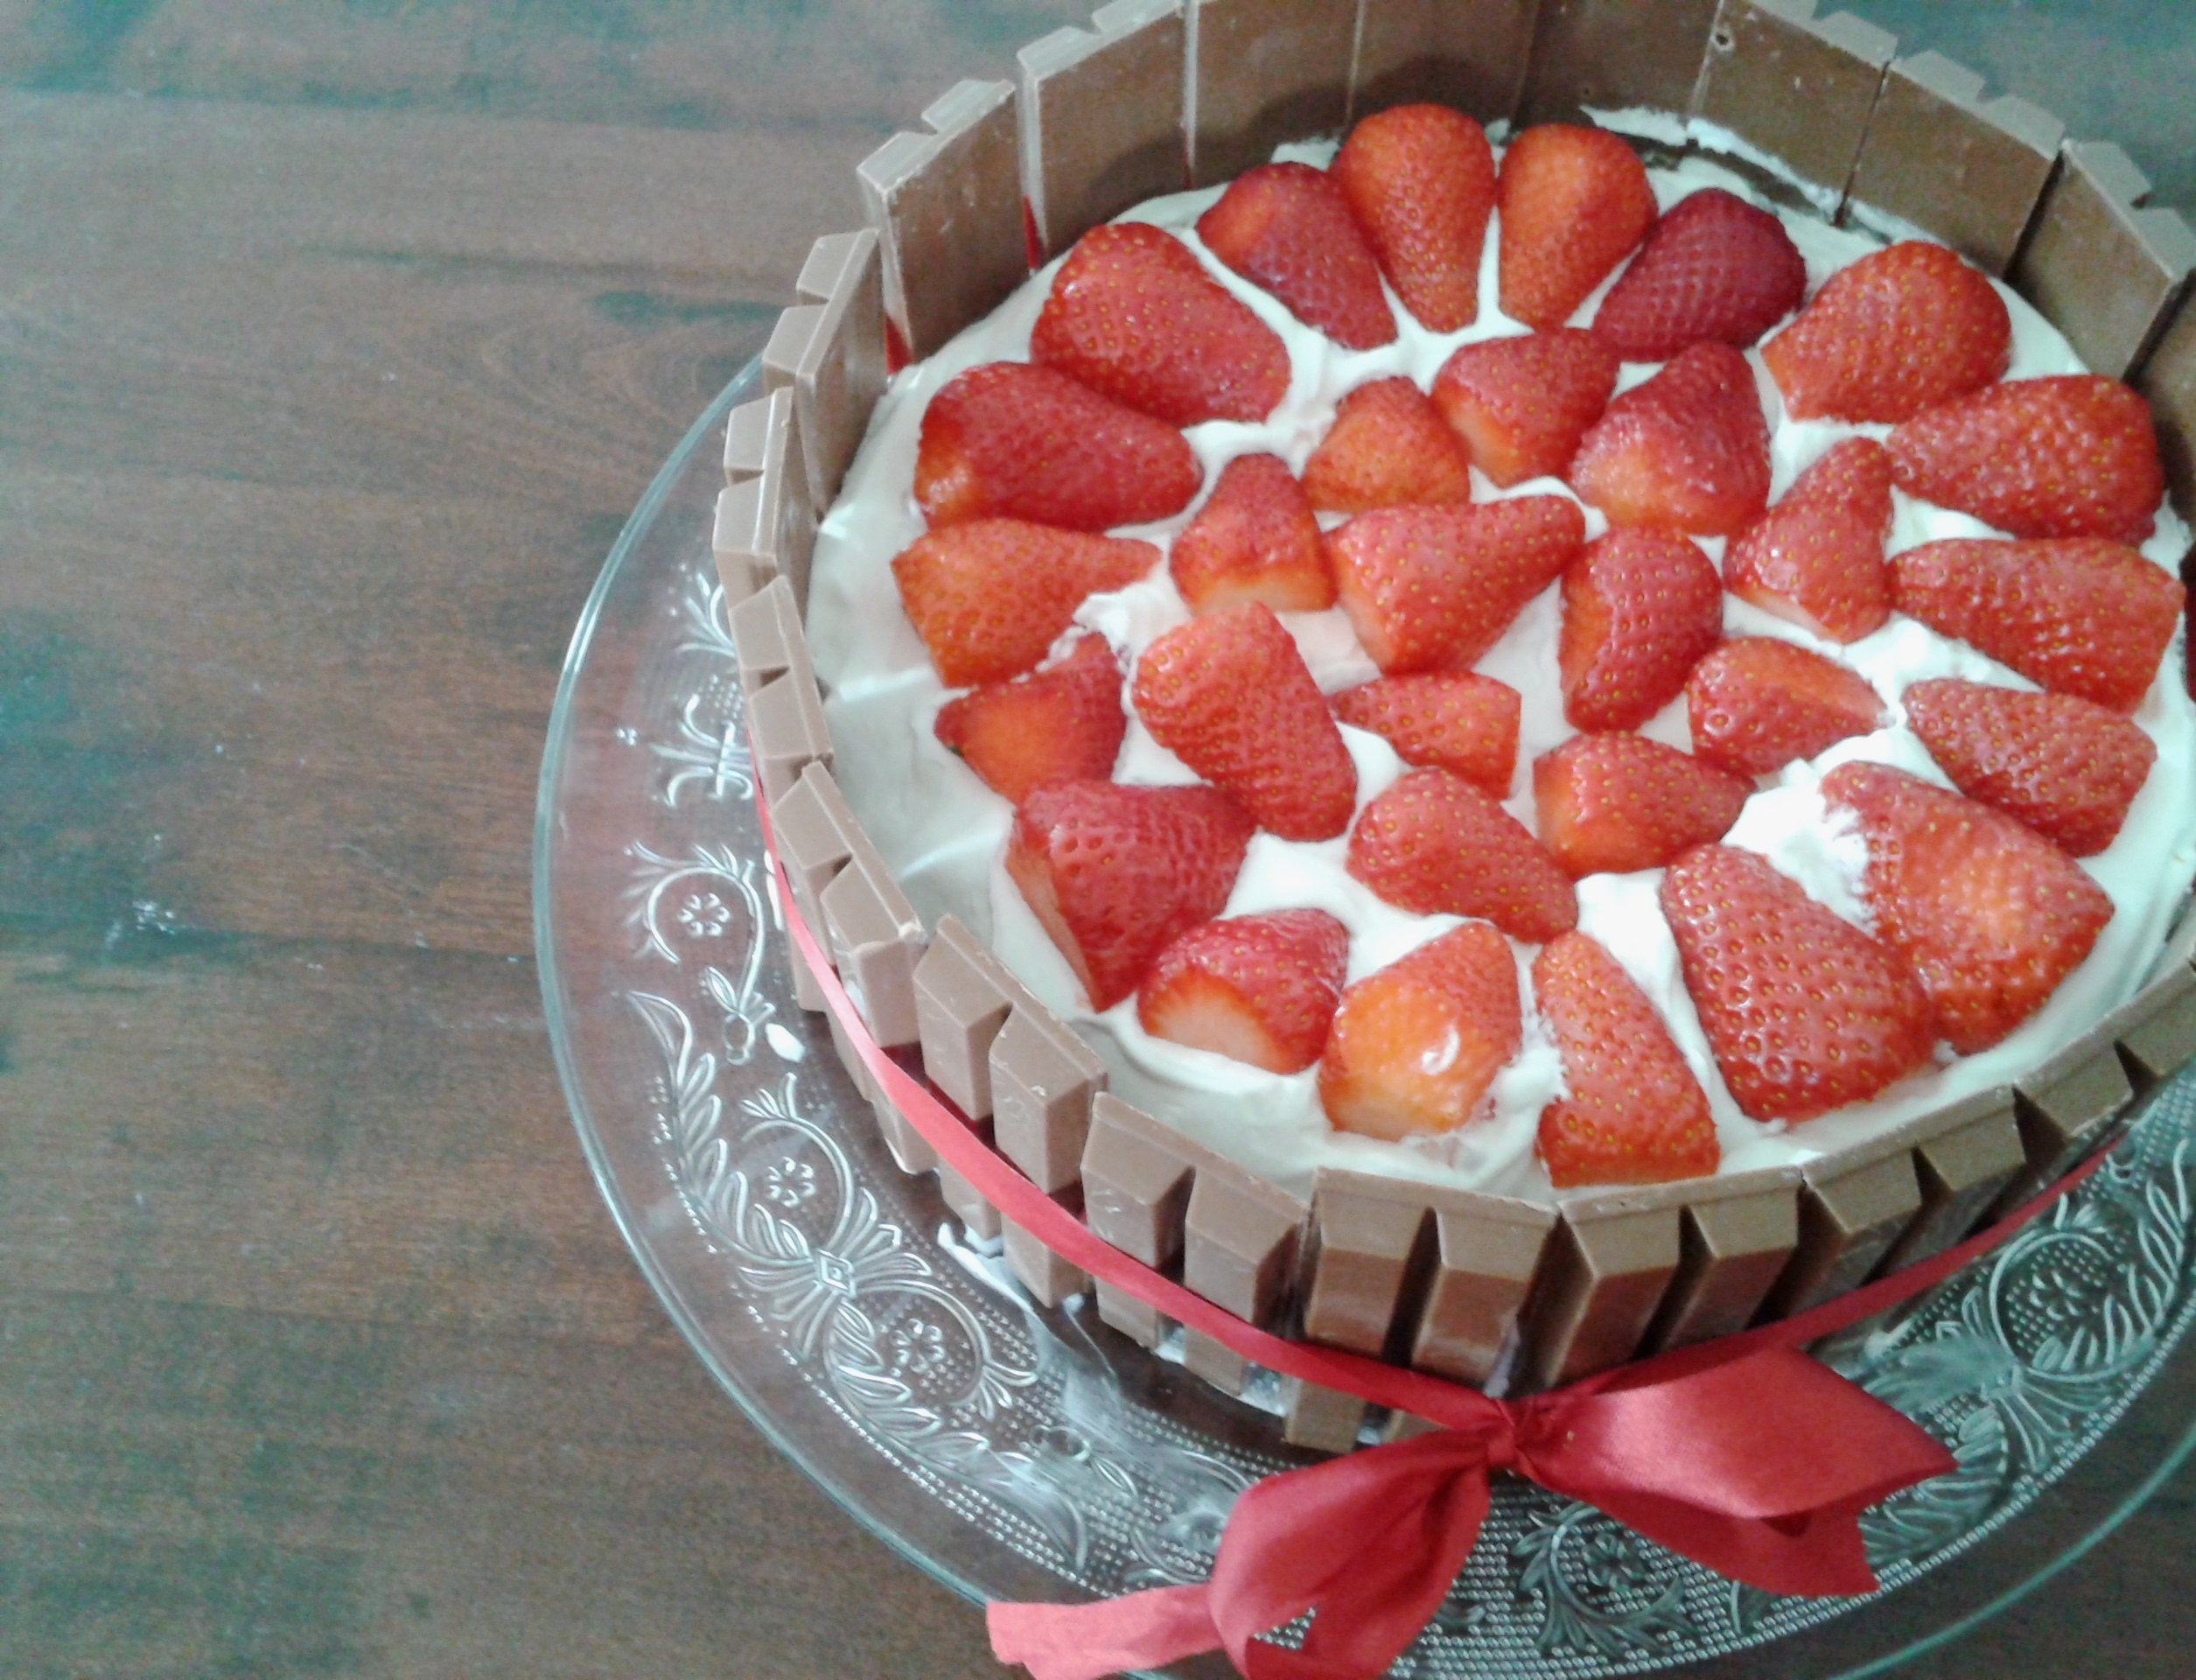 Biskuittorte mit Erdbeeren und Schlagsahne (Sponge Cake with Strawberries and Cream)